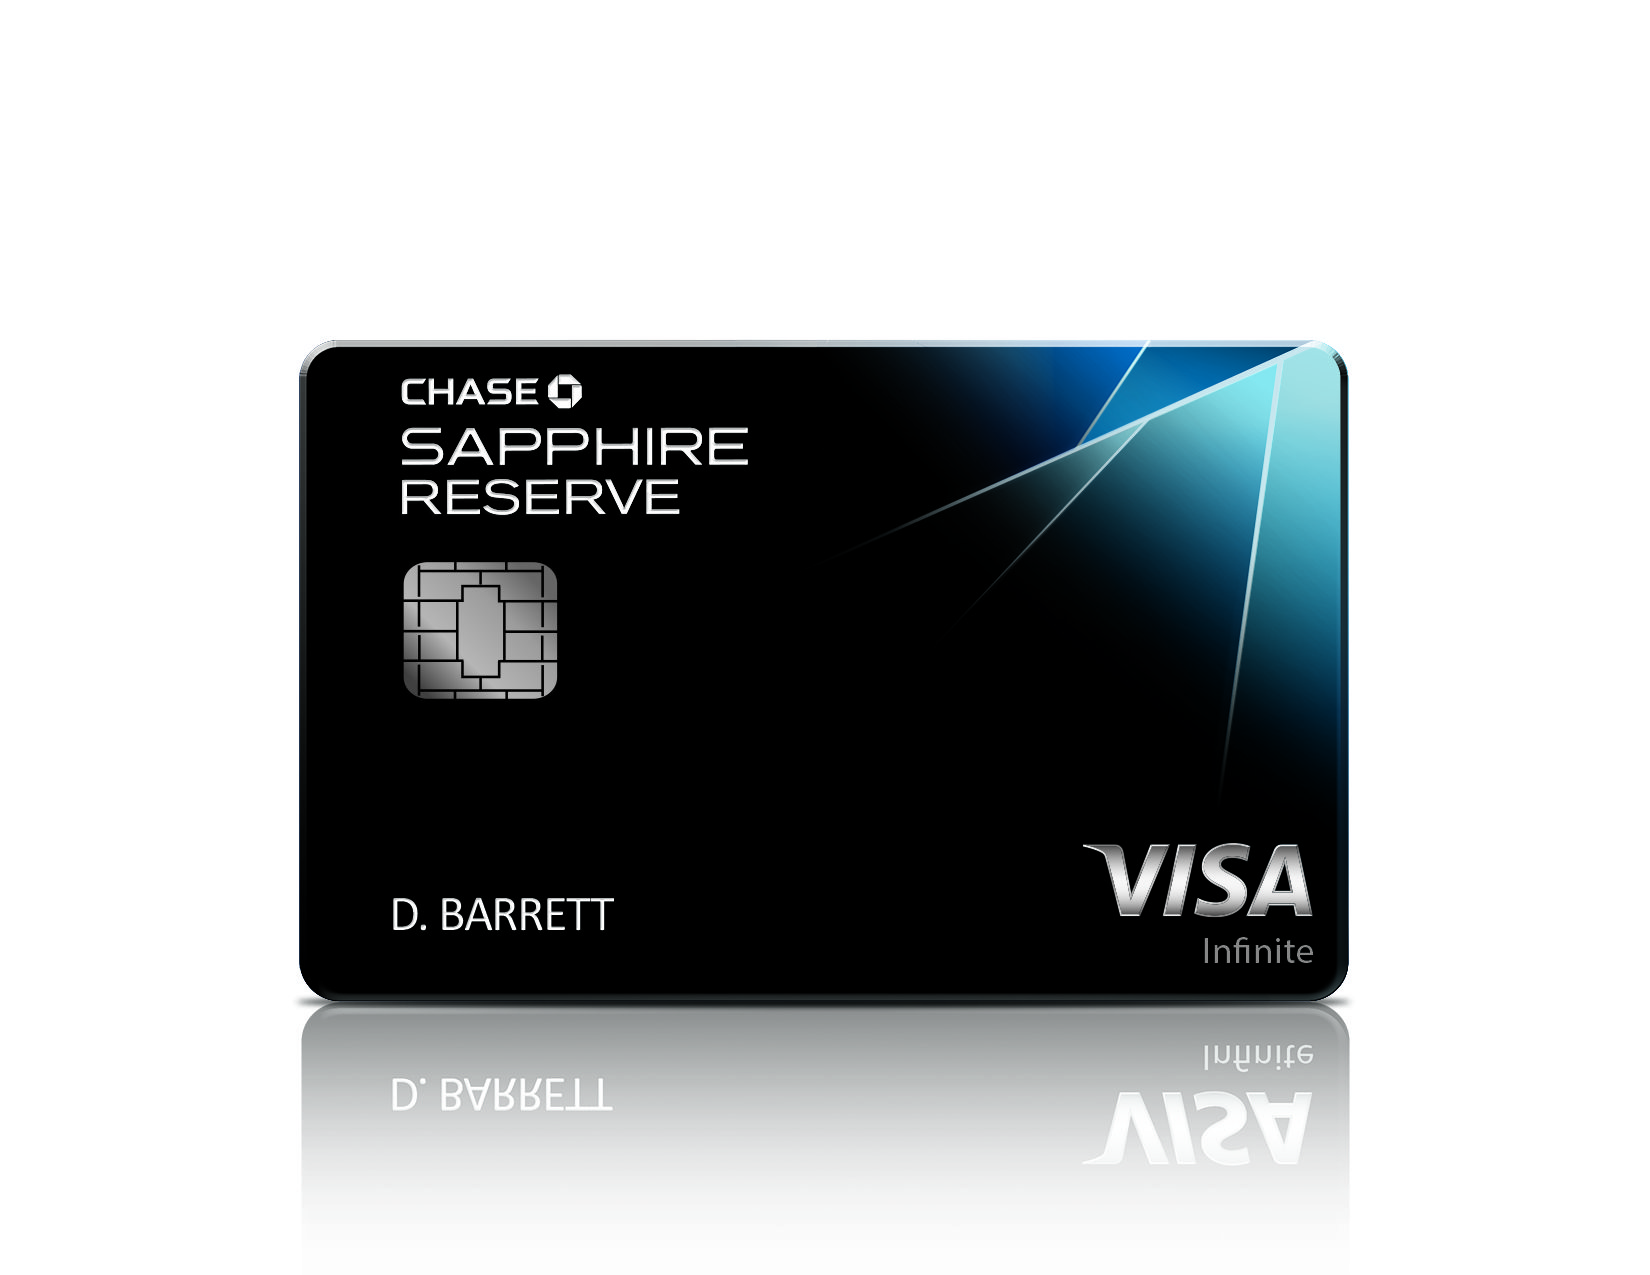 Choosing Between Chase Sapphire Cards